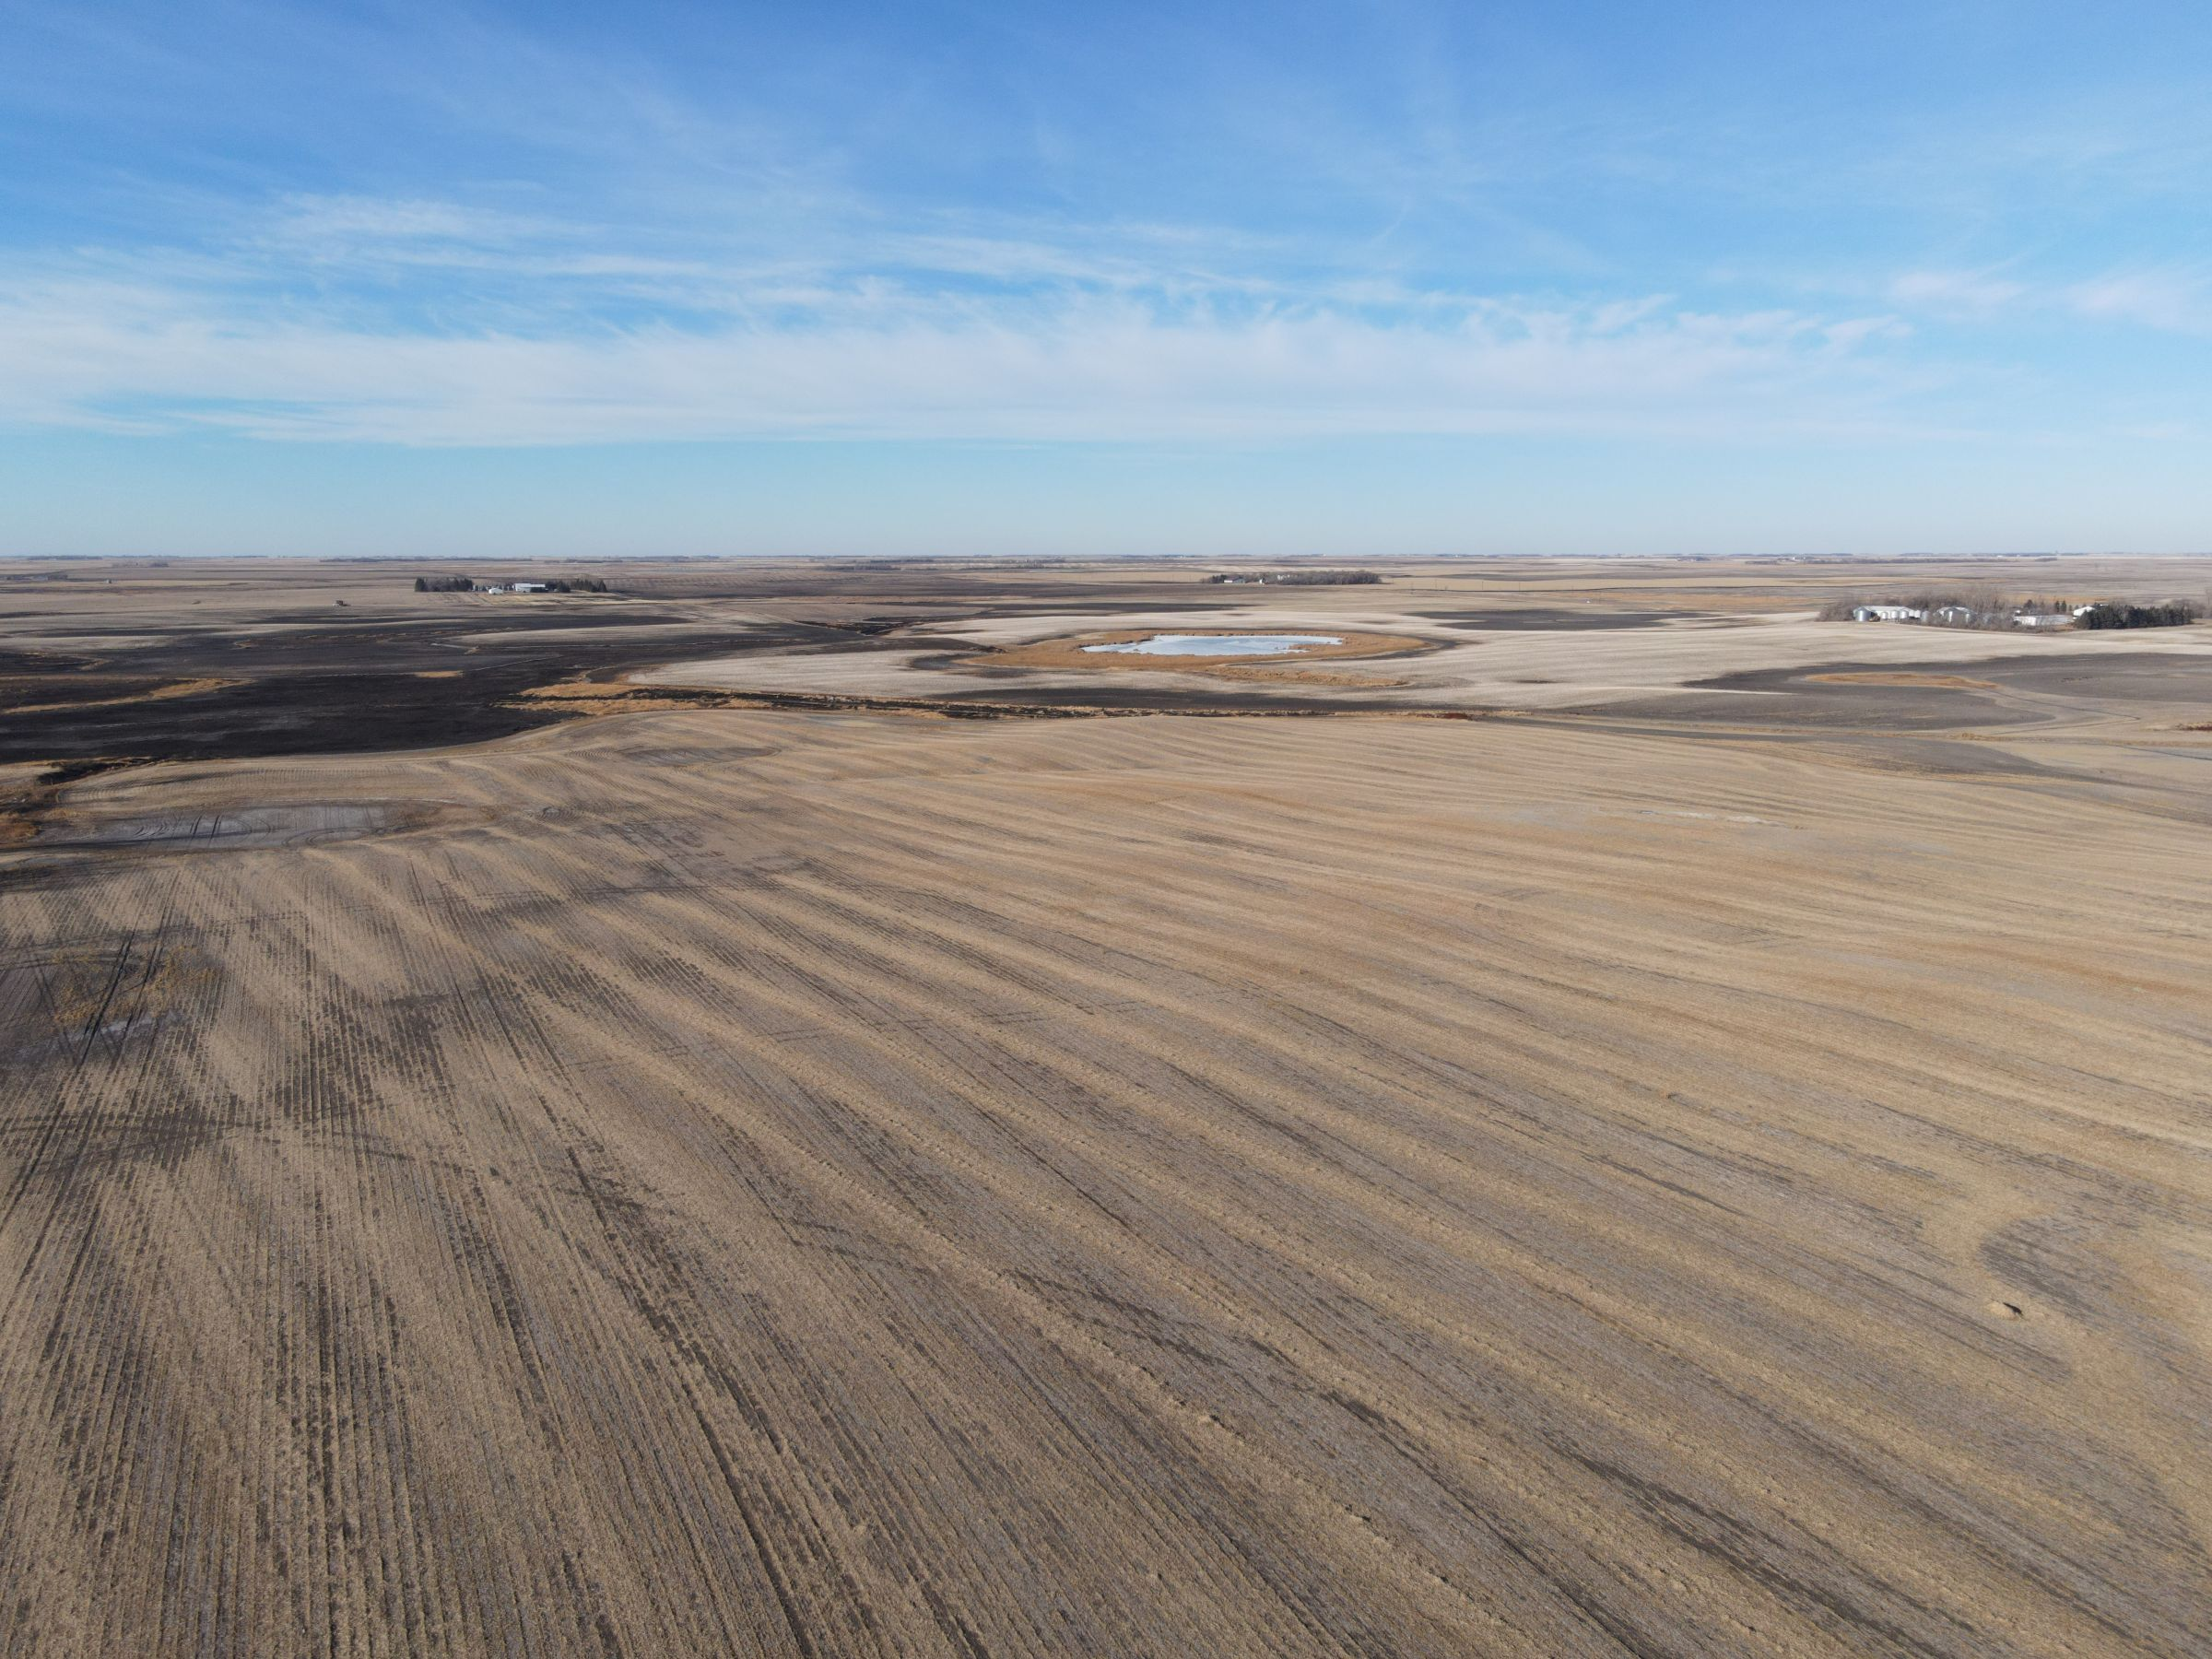 land-ramsey-county-north-dakota-157-acres-listing-number-15291-0-2020-12-10-222413.JPG